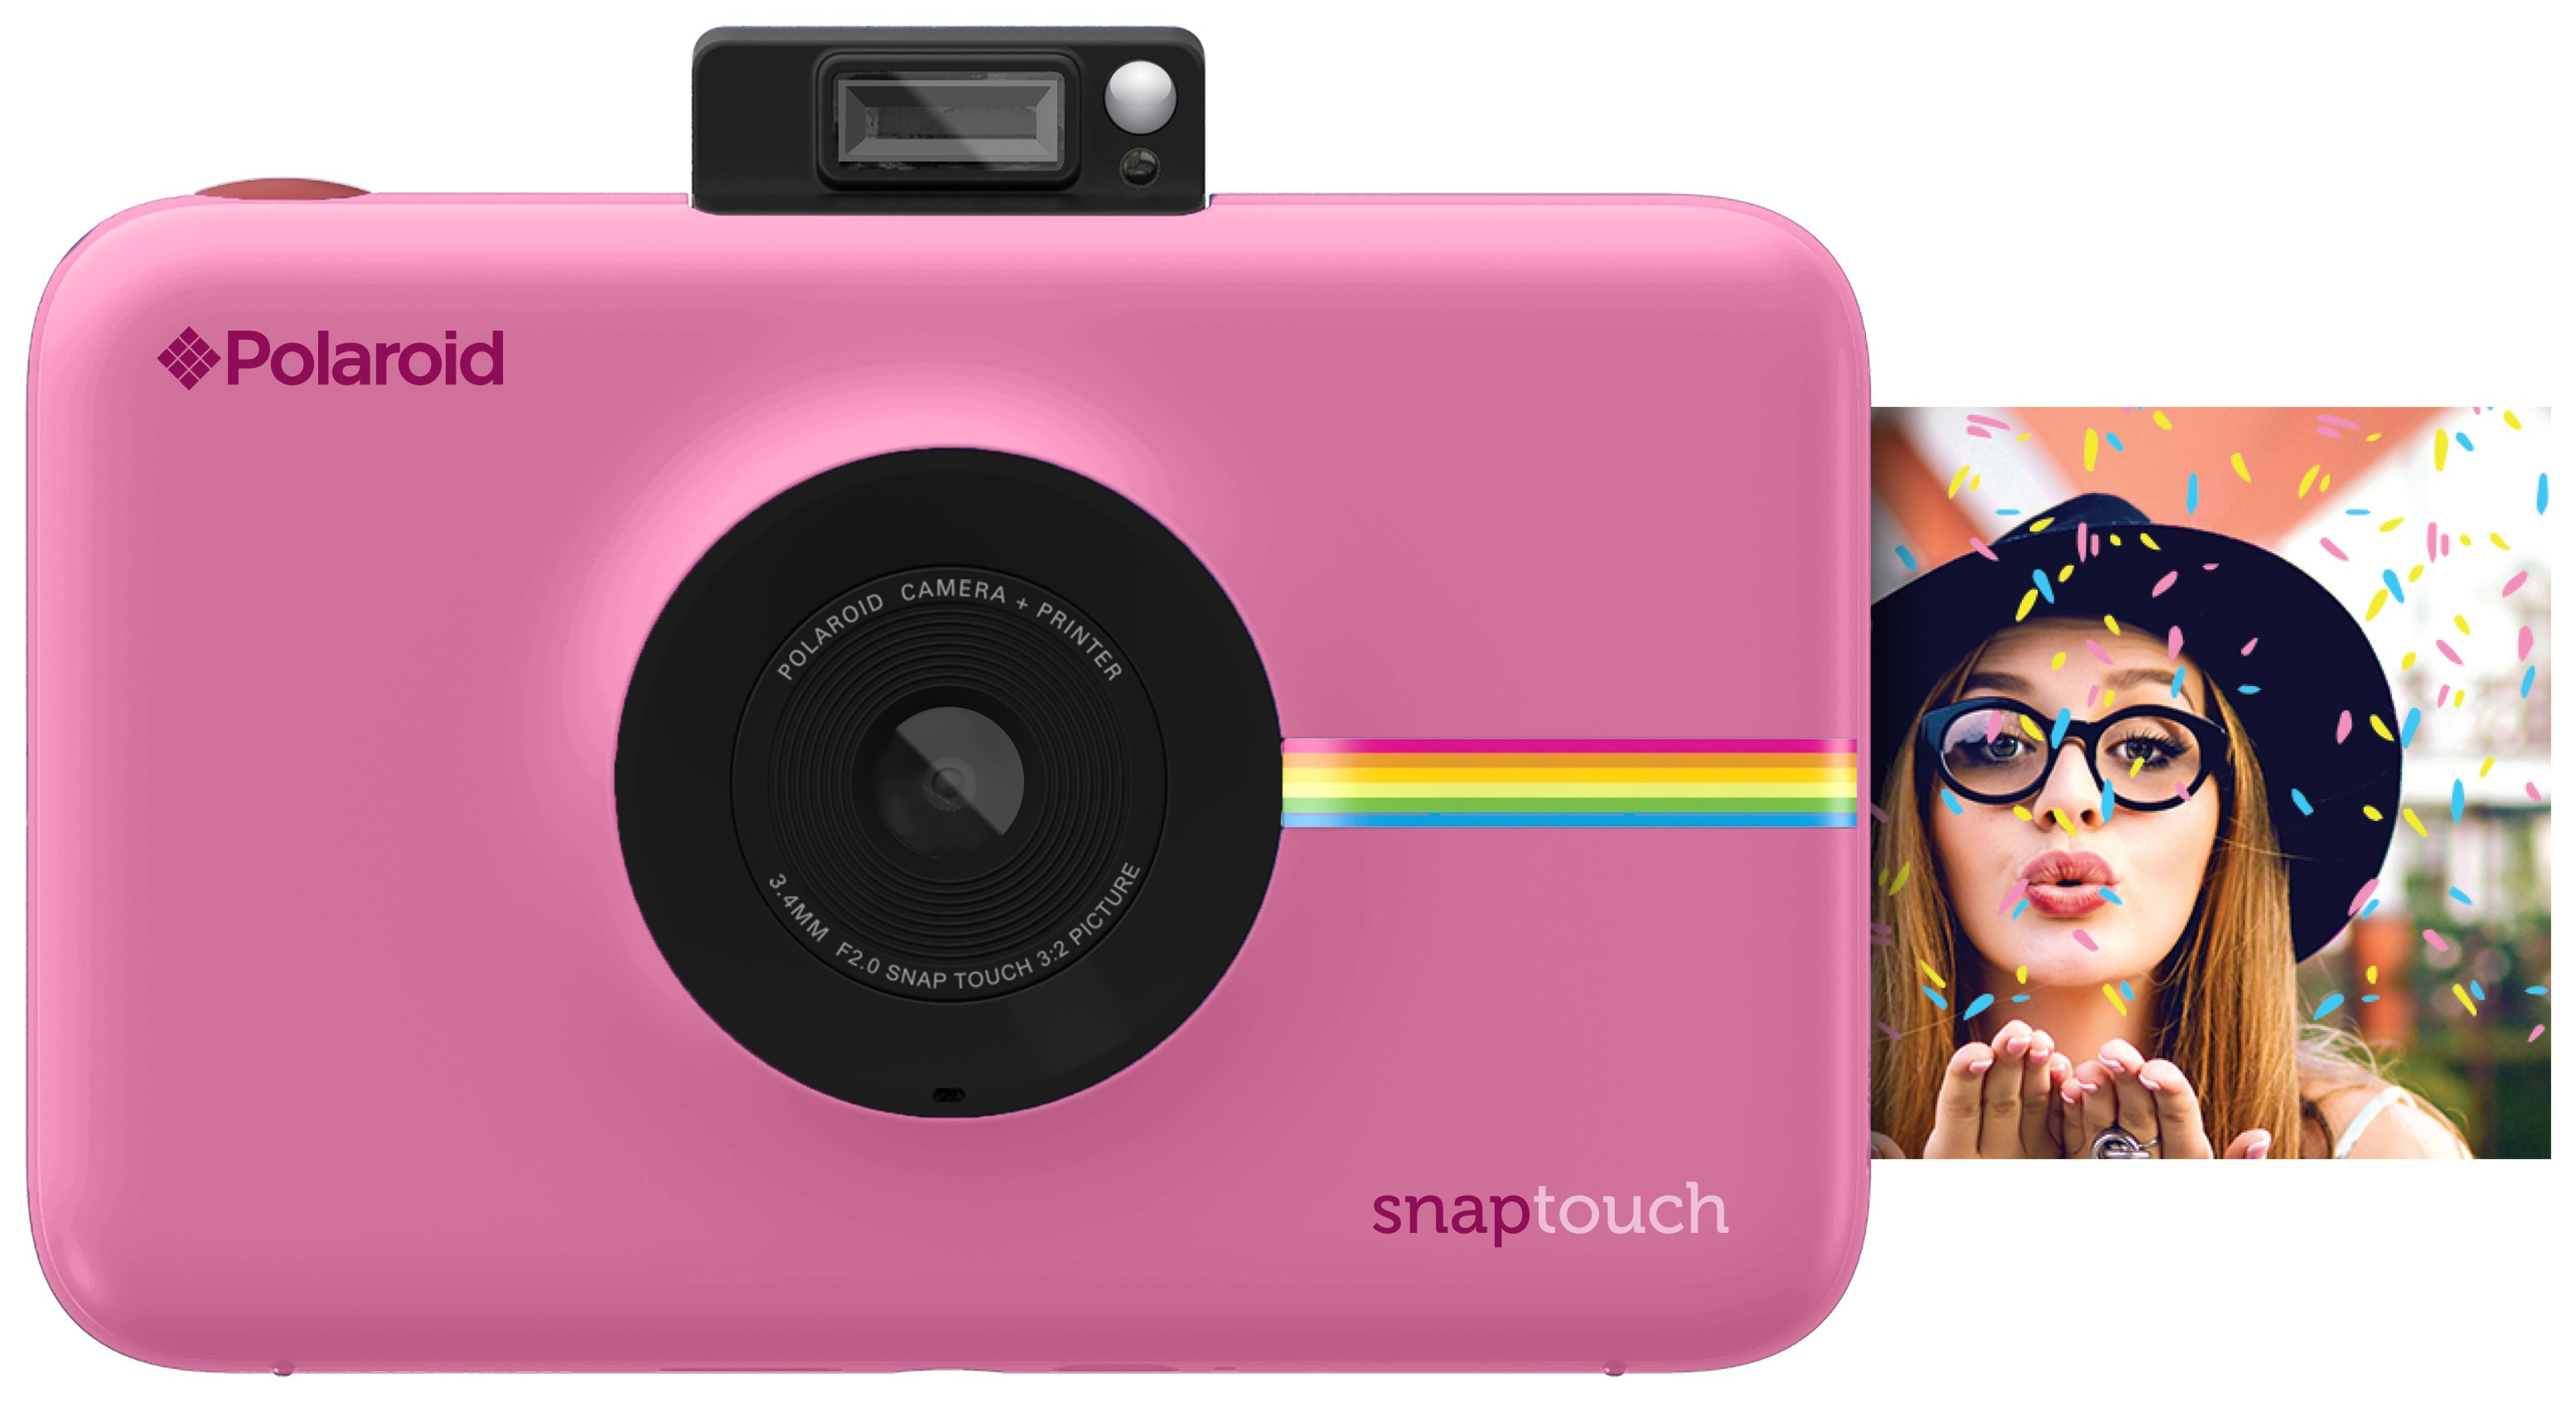 Polaroid Snap Touch Camera - Pink.